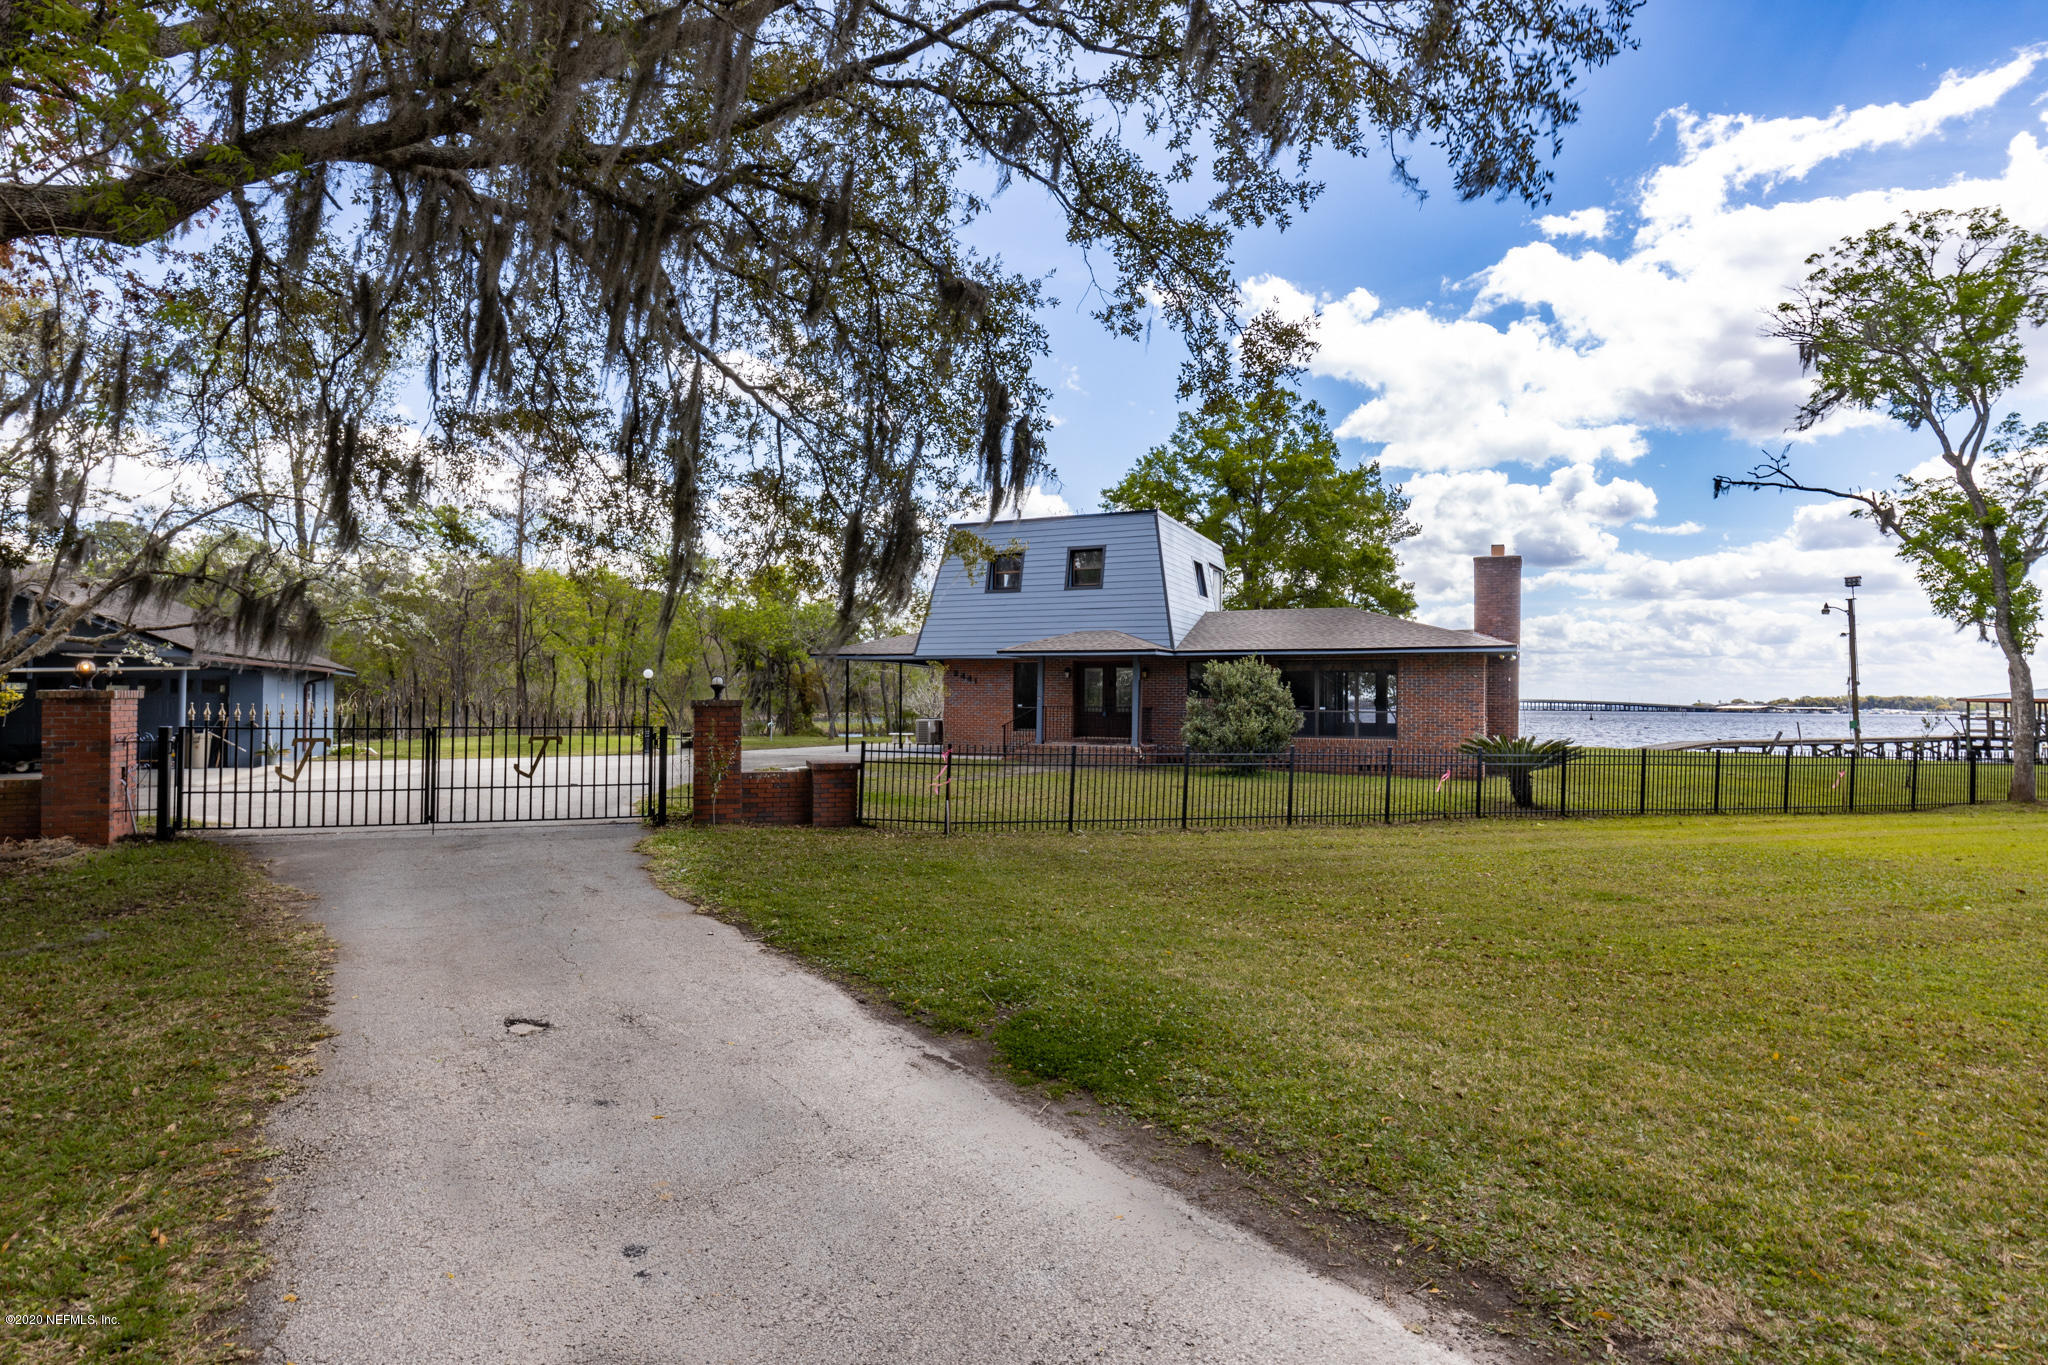 2441 DOGWOOD, ORANGE PARK, FLORIDA 32073, 3 Bedrooms Bedrooms, ,3 BathroomsBathrooms,Residential,For sale,DOGWOOD,1041496